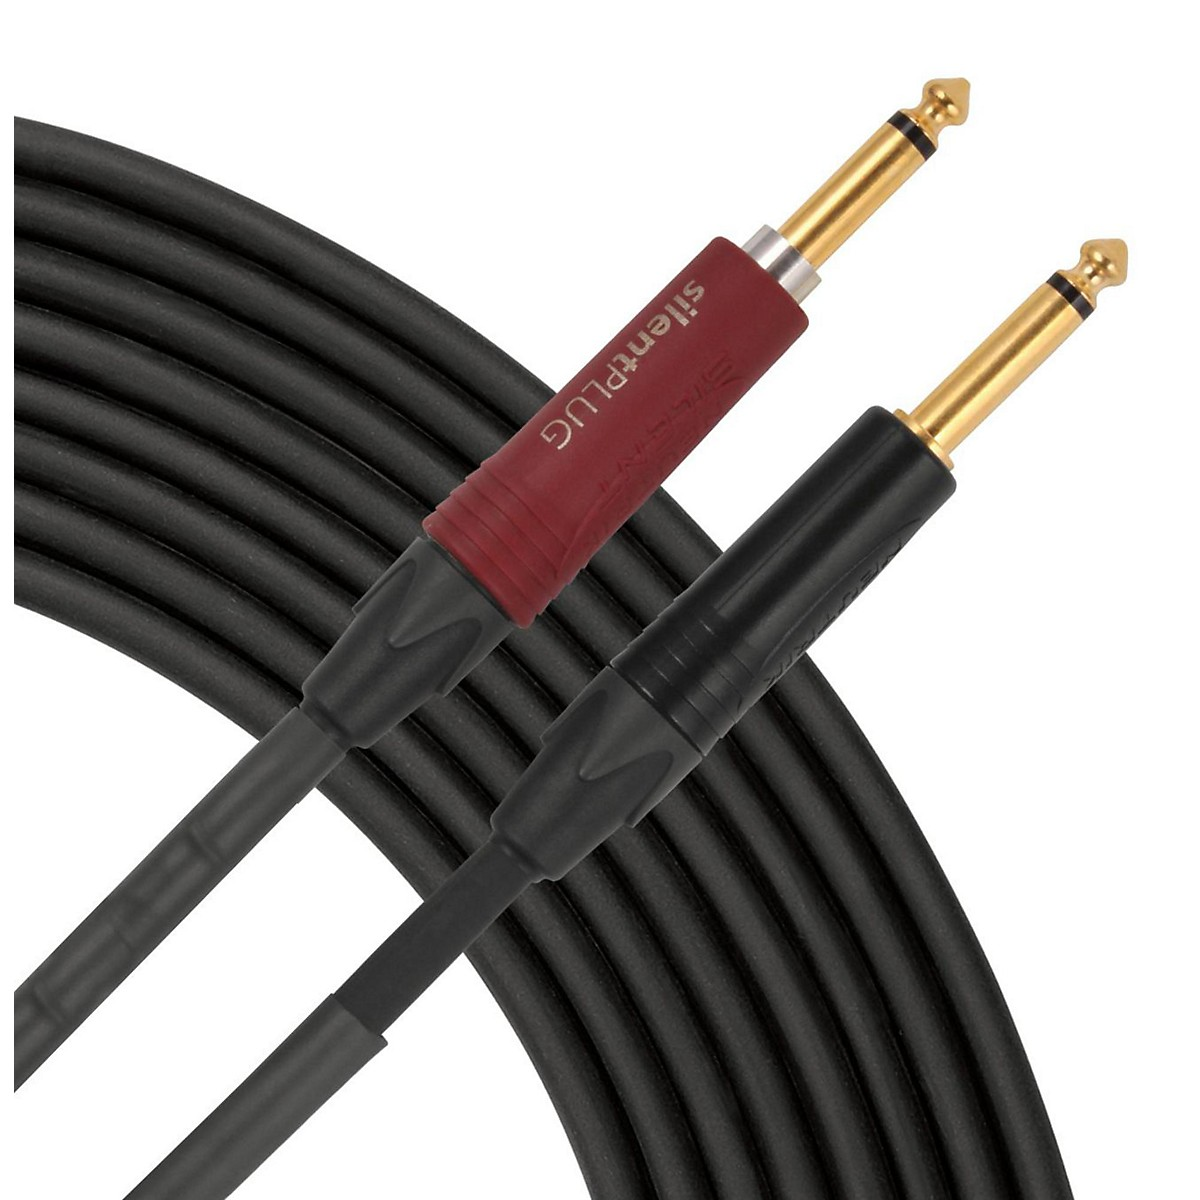 Livewire Elite Instrument Cable with Silent Jack